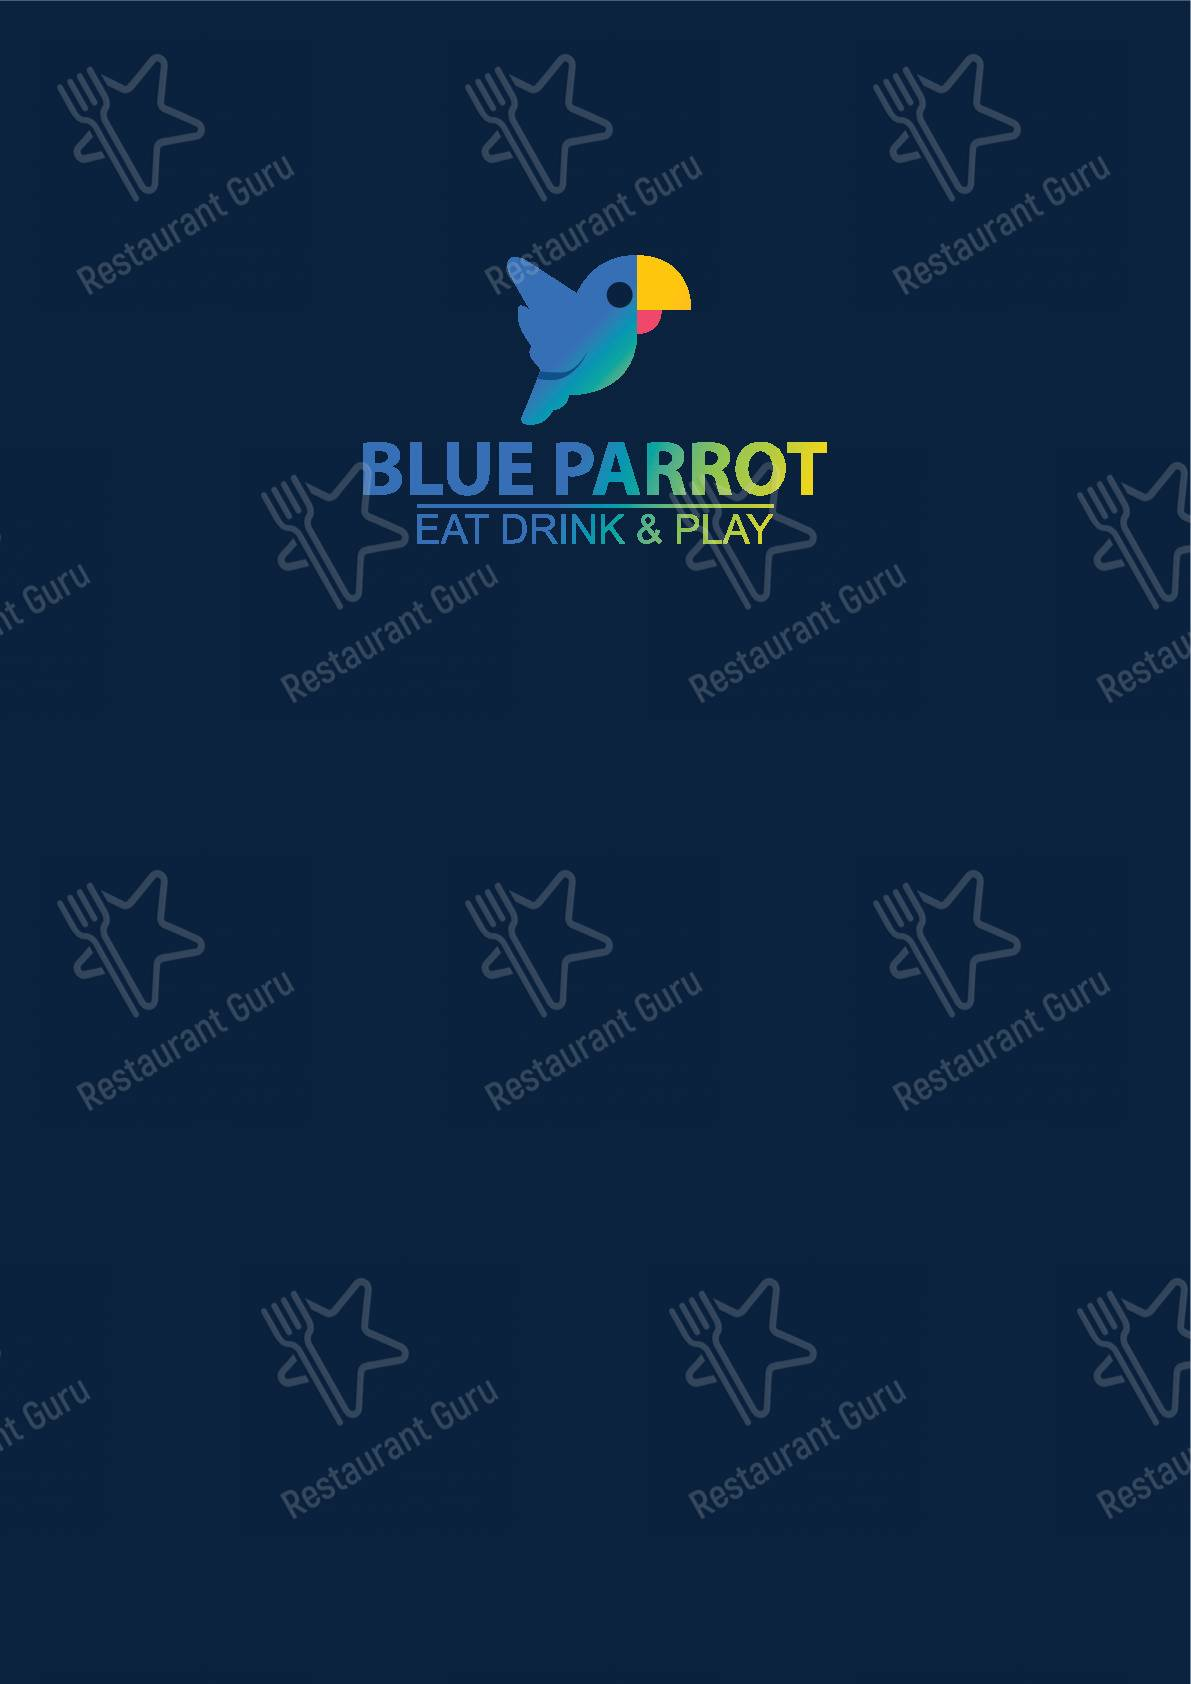 Blue Parrot menu - meals and drinks